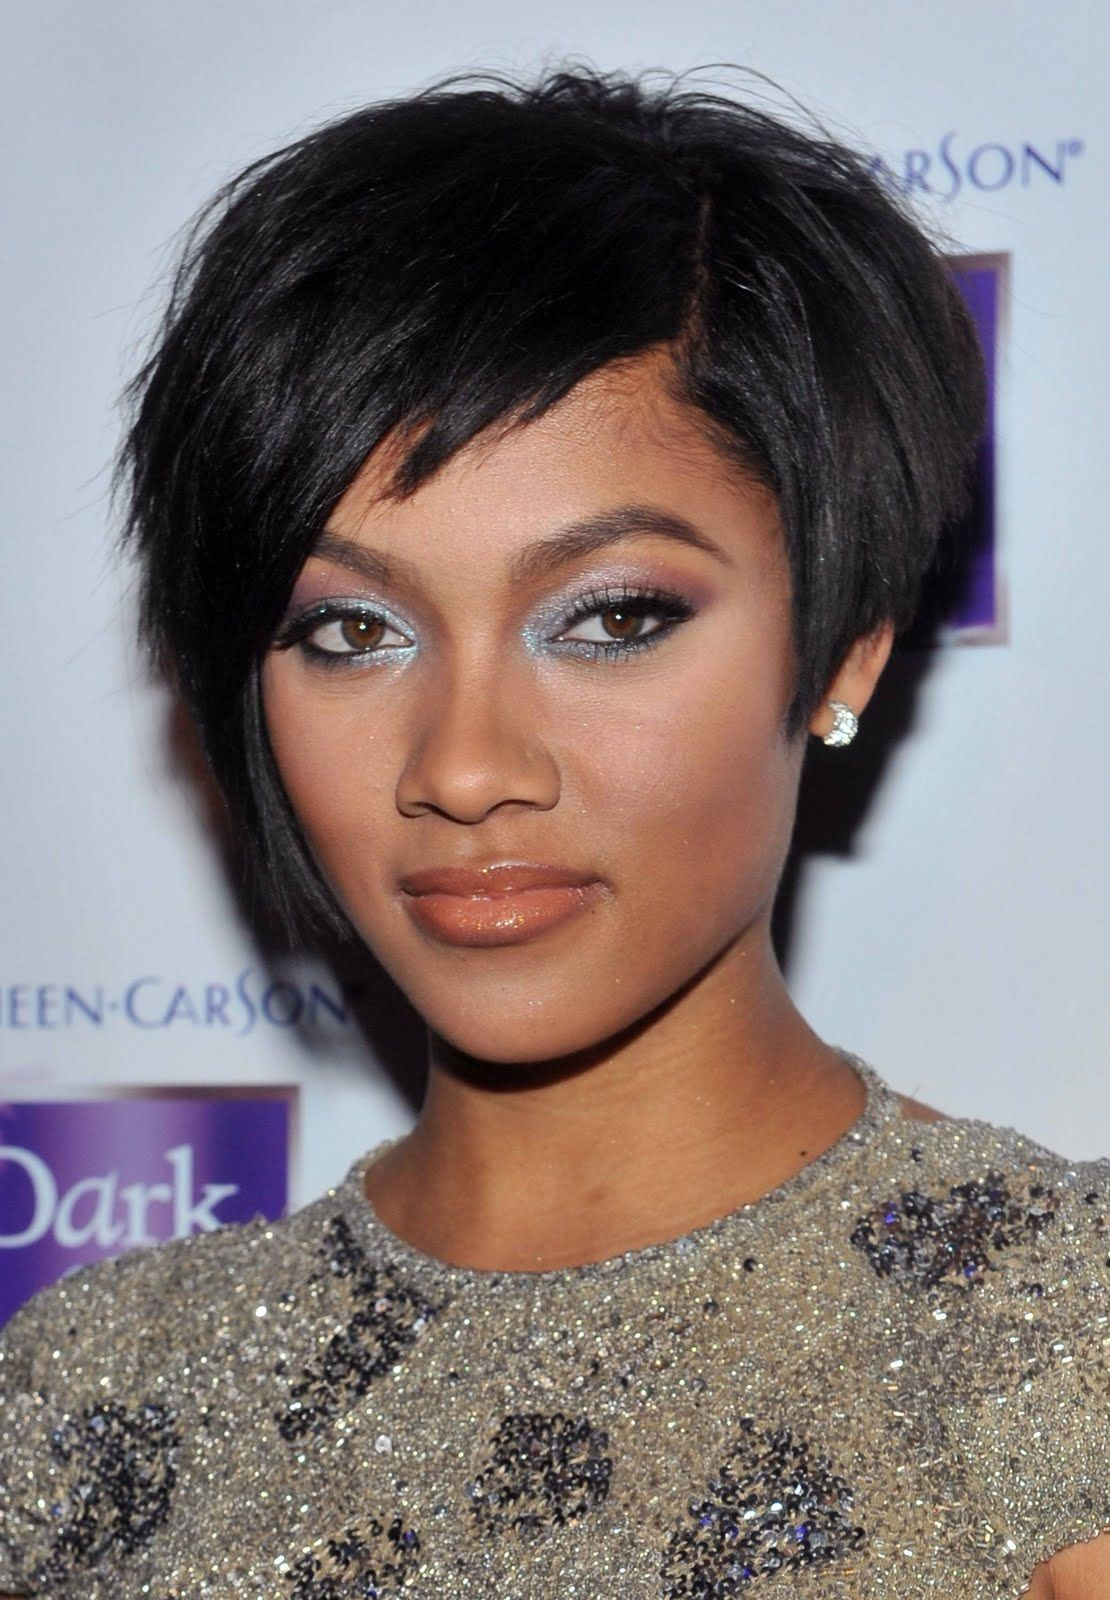 Hairstyles For Black Short Hair ShortBlackHaircuts - Black people short hairstyles